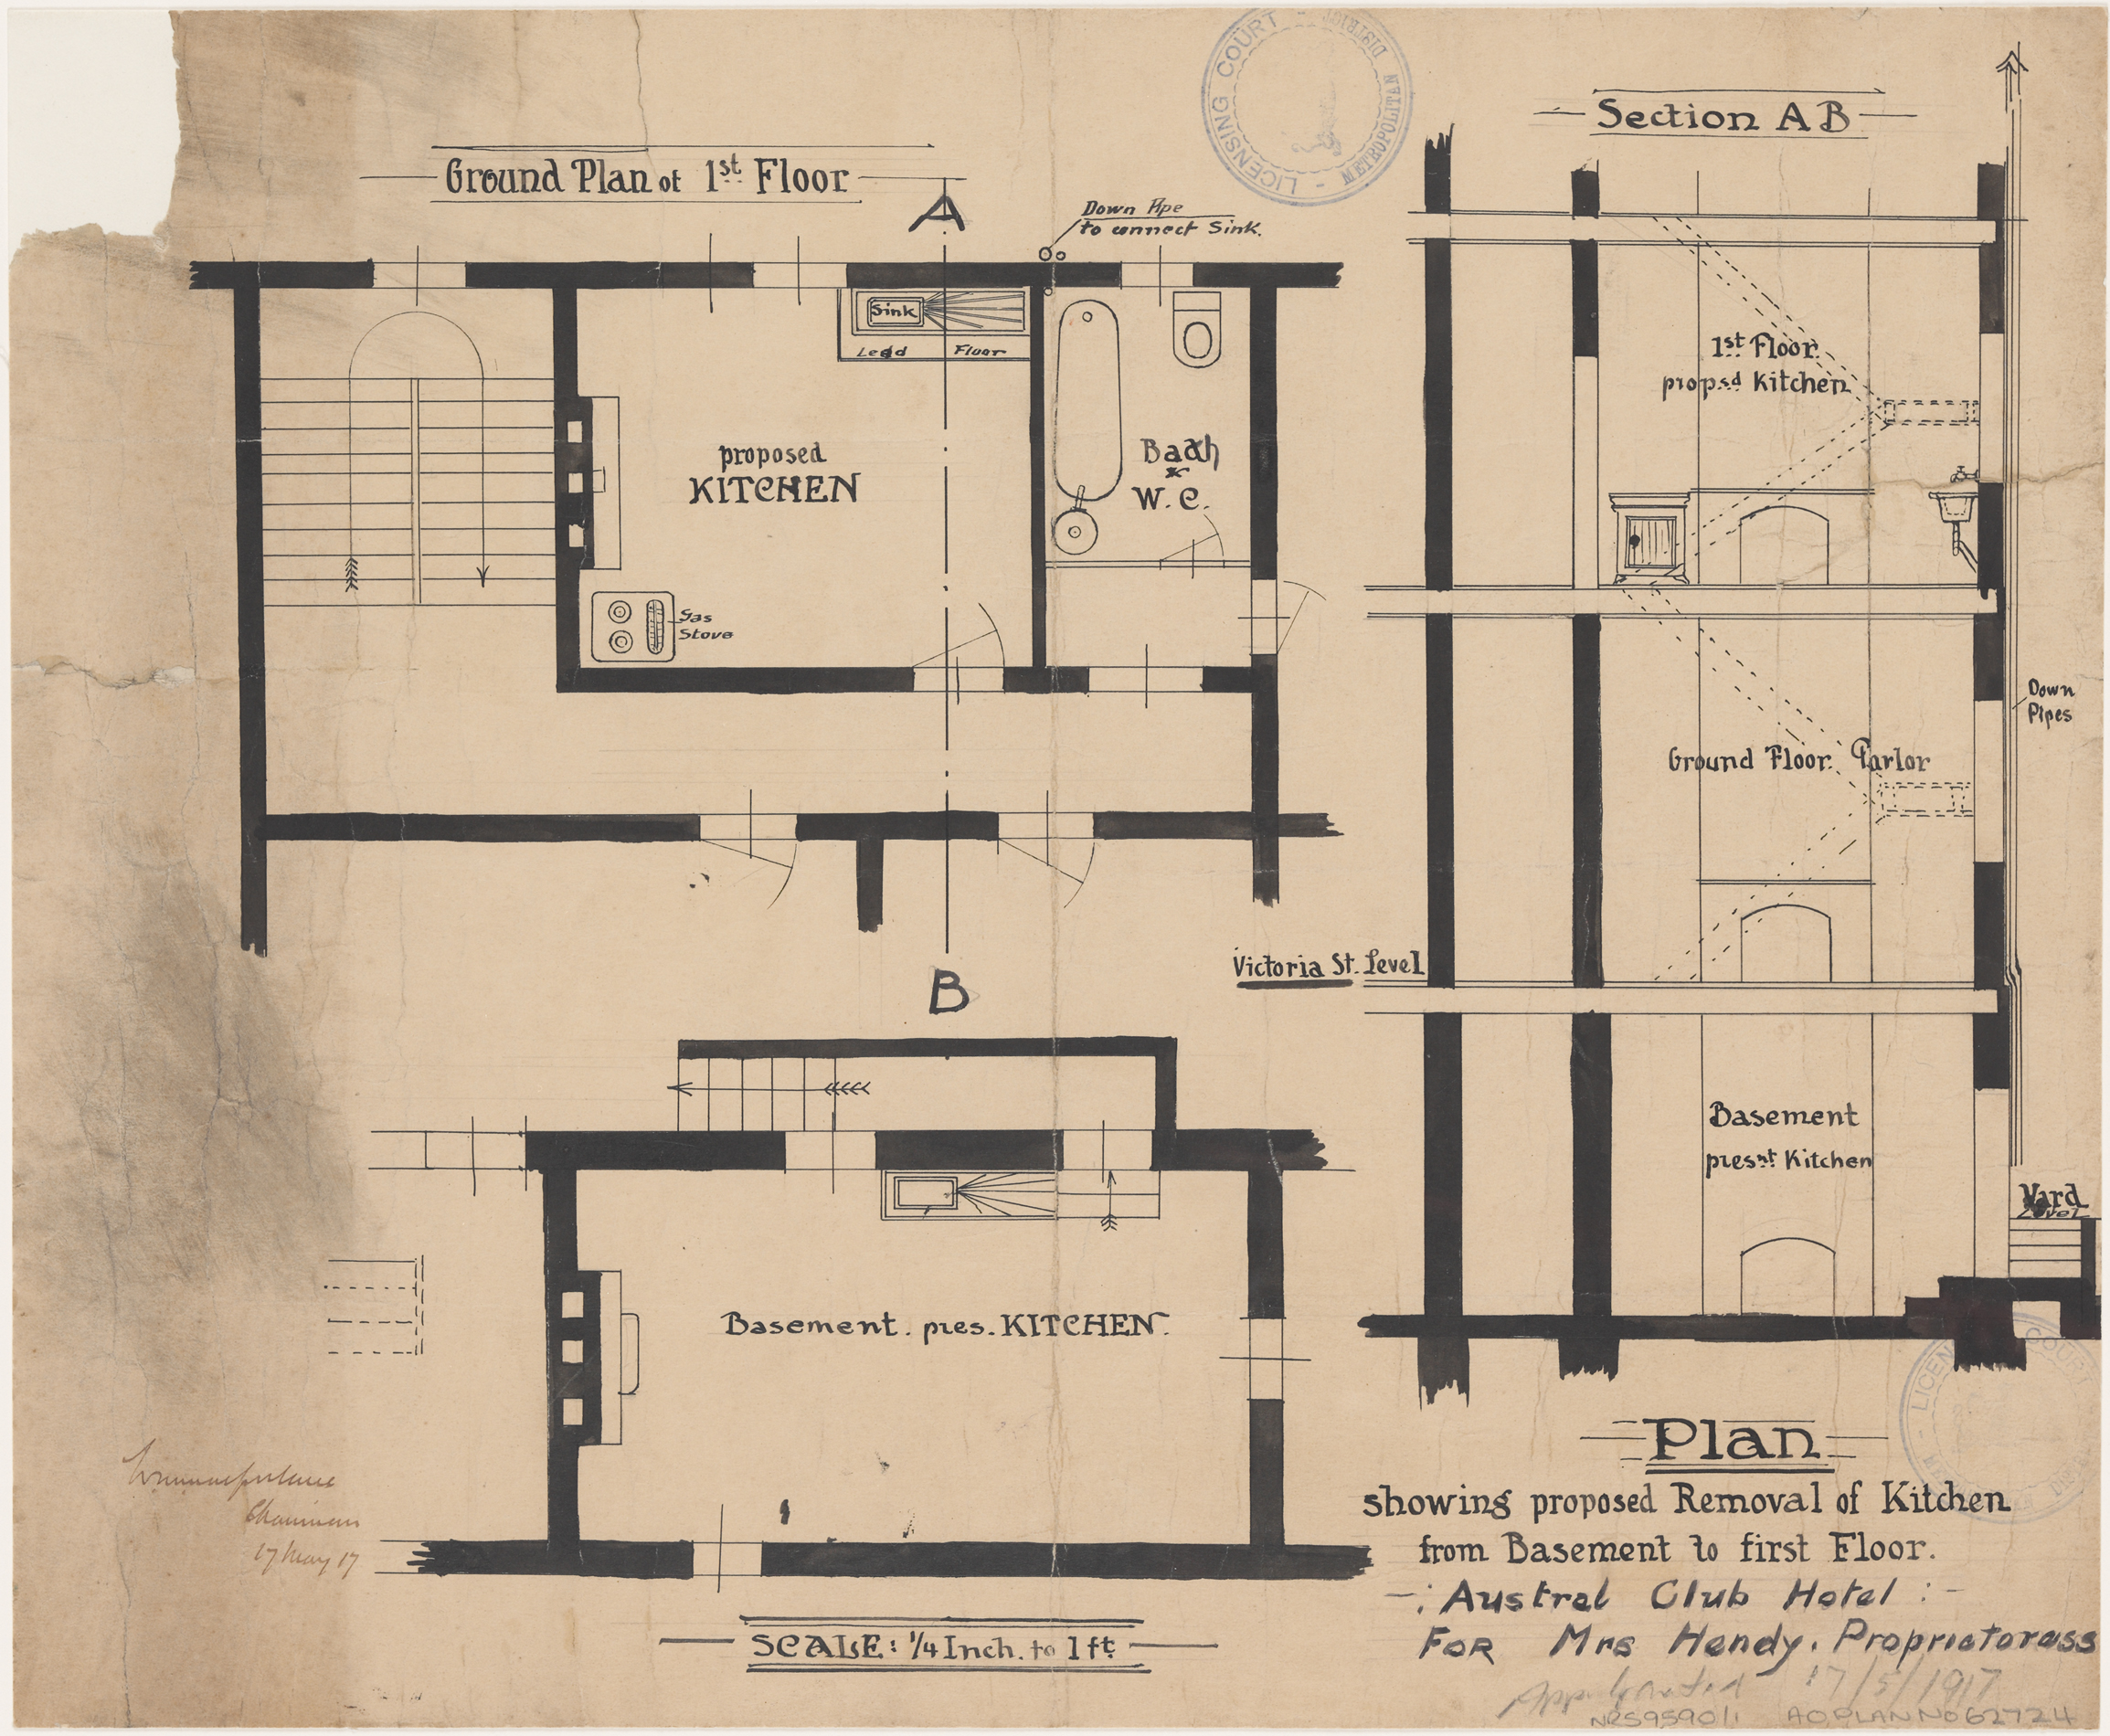 Austral Club Hotel, Victoria Street, Darlinghurst, Plan showing proposed removal of kitchen from basement to first floor, Applicant/owner, Mrs Hendy.  Application lodged, 17 May 1917